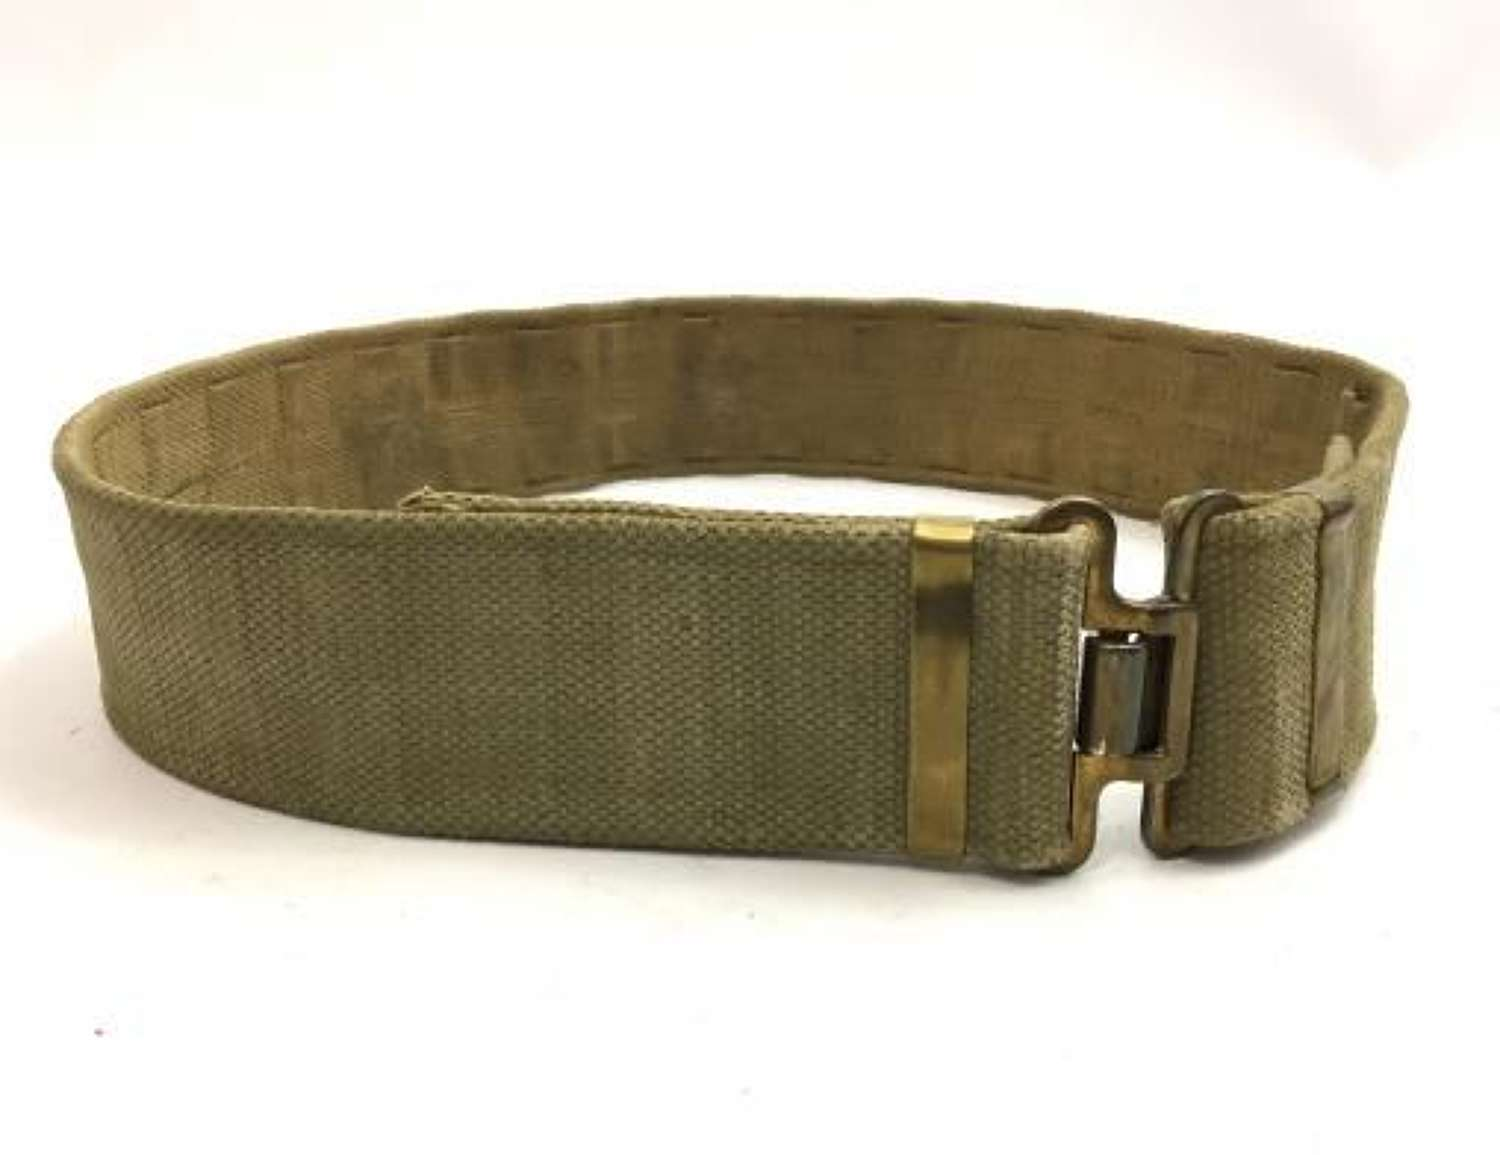 Original 1937 Pattern Belt